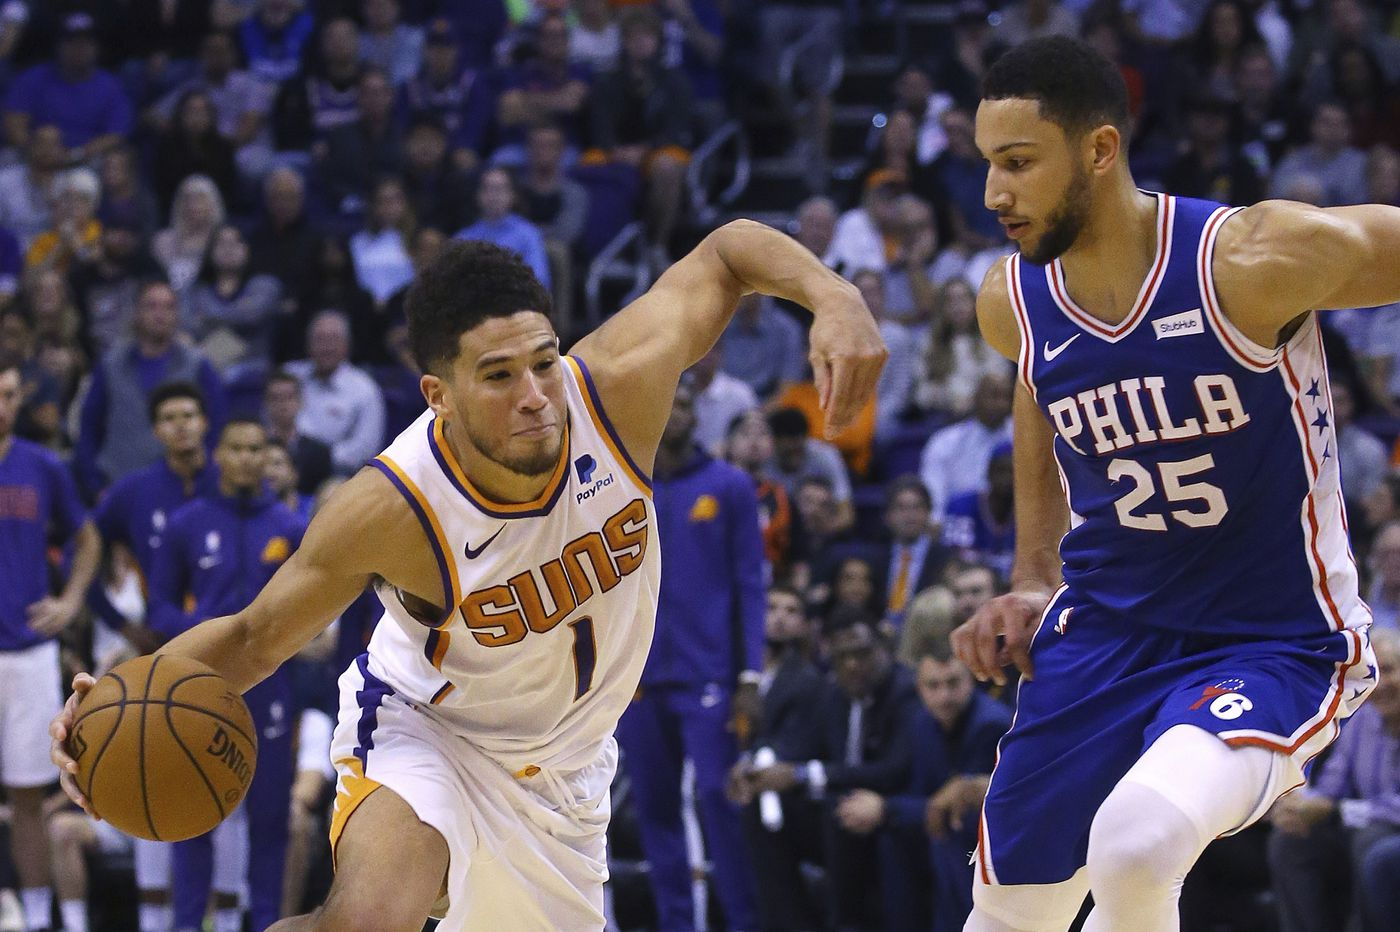 Sixers-Suns best and worst: Devin Booker's dominance, backcourt struggles, foul shooting